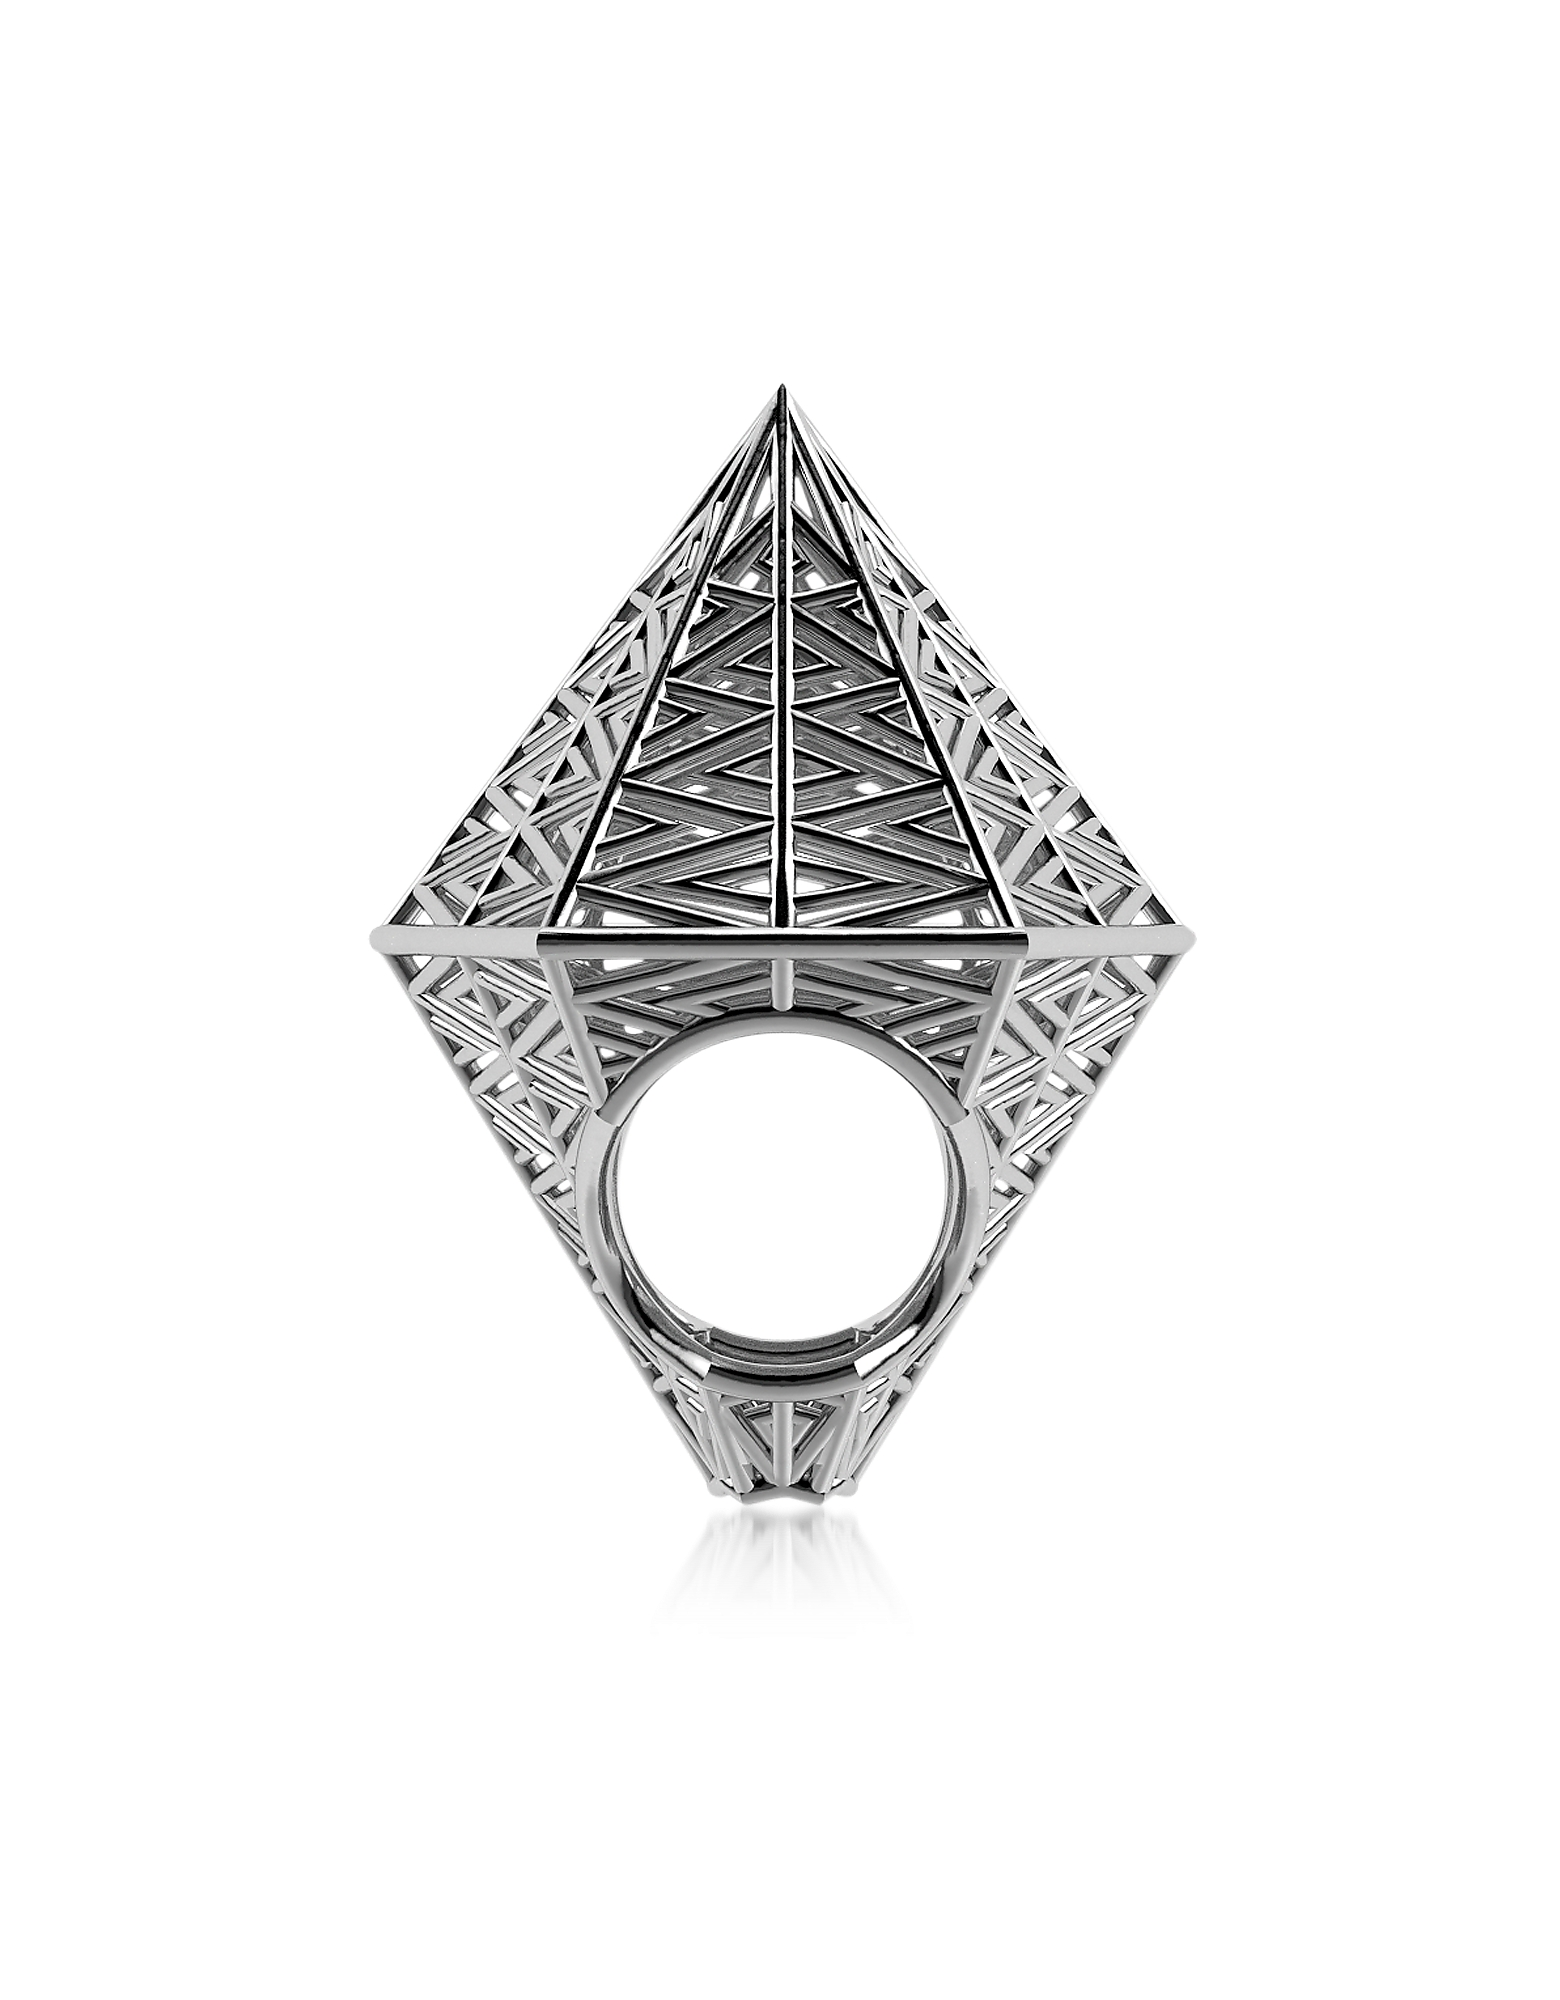 Vojd Studios Rings, Umbala Hexagonal Sterling Silver Ring